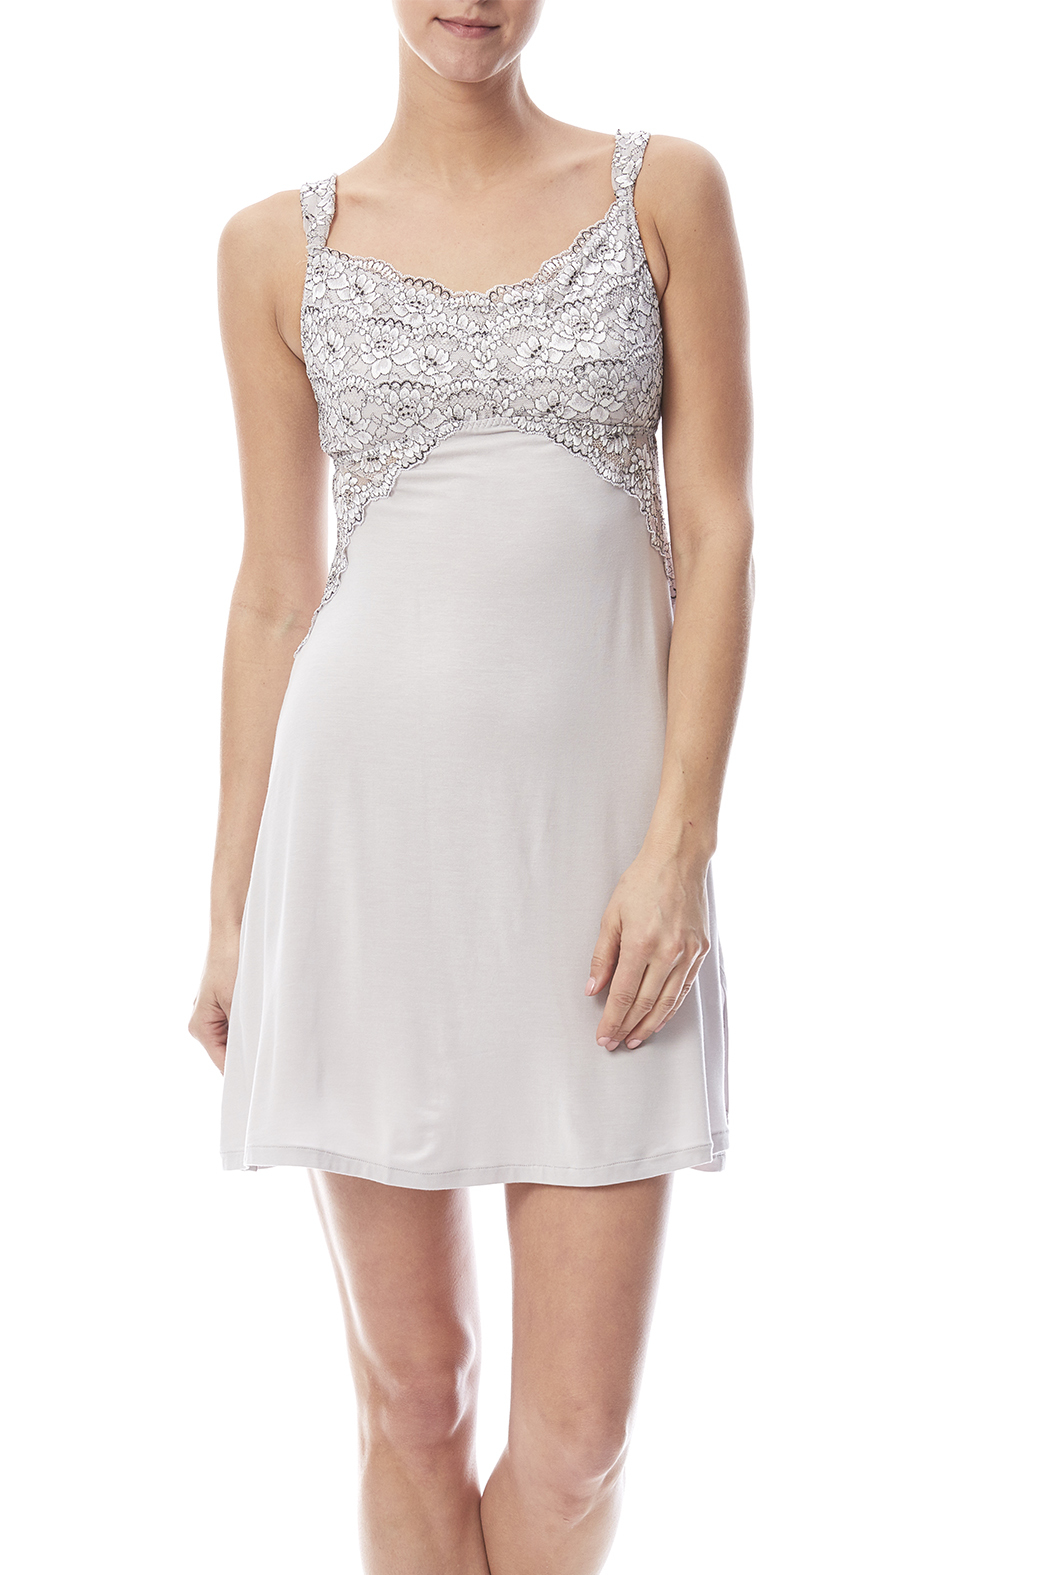 Tia Lyn Grey Modal Chemise - Front Cropped Image